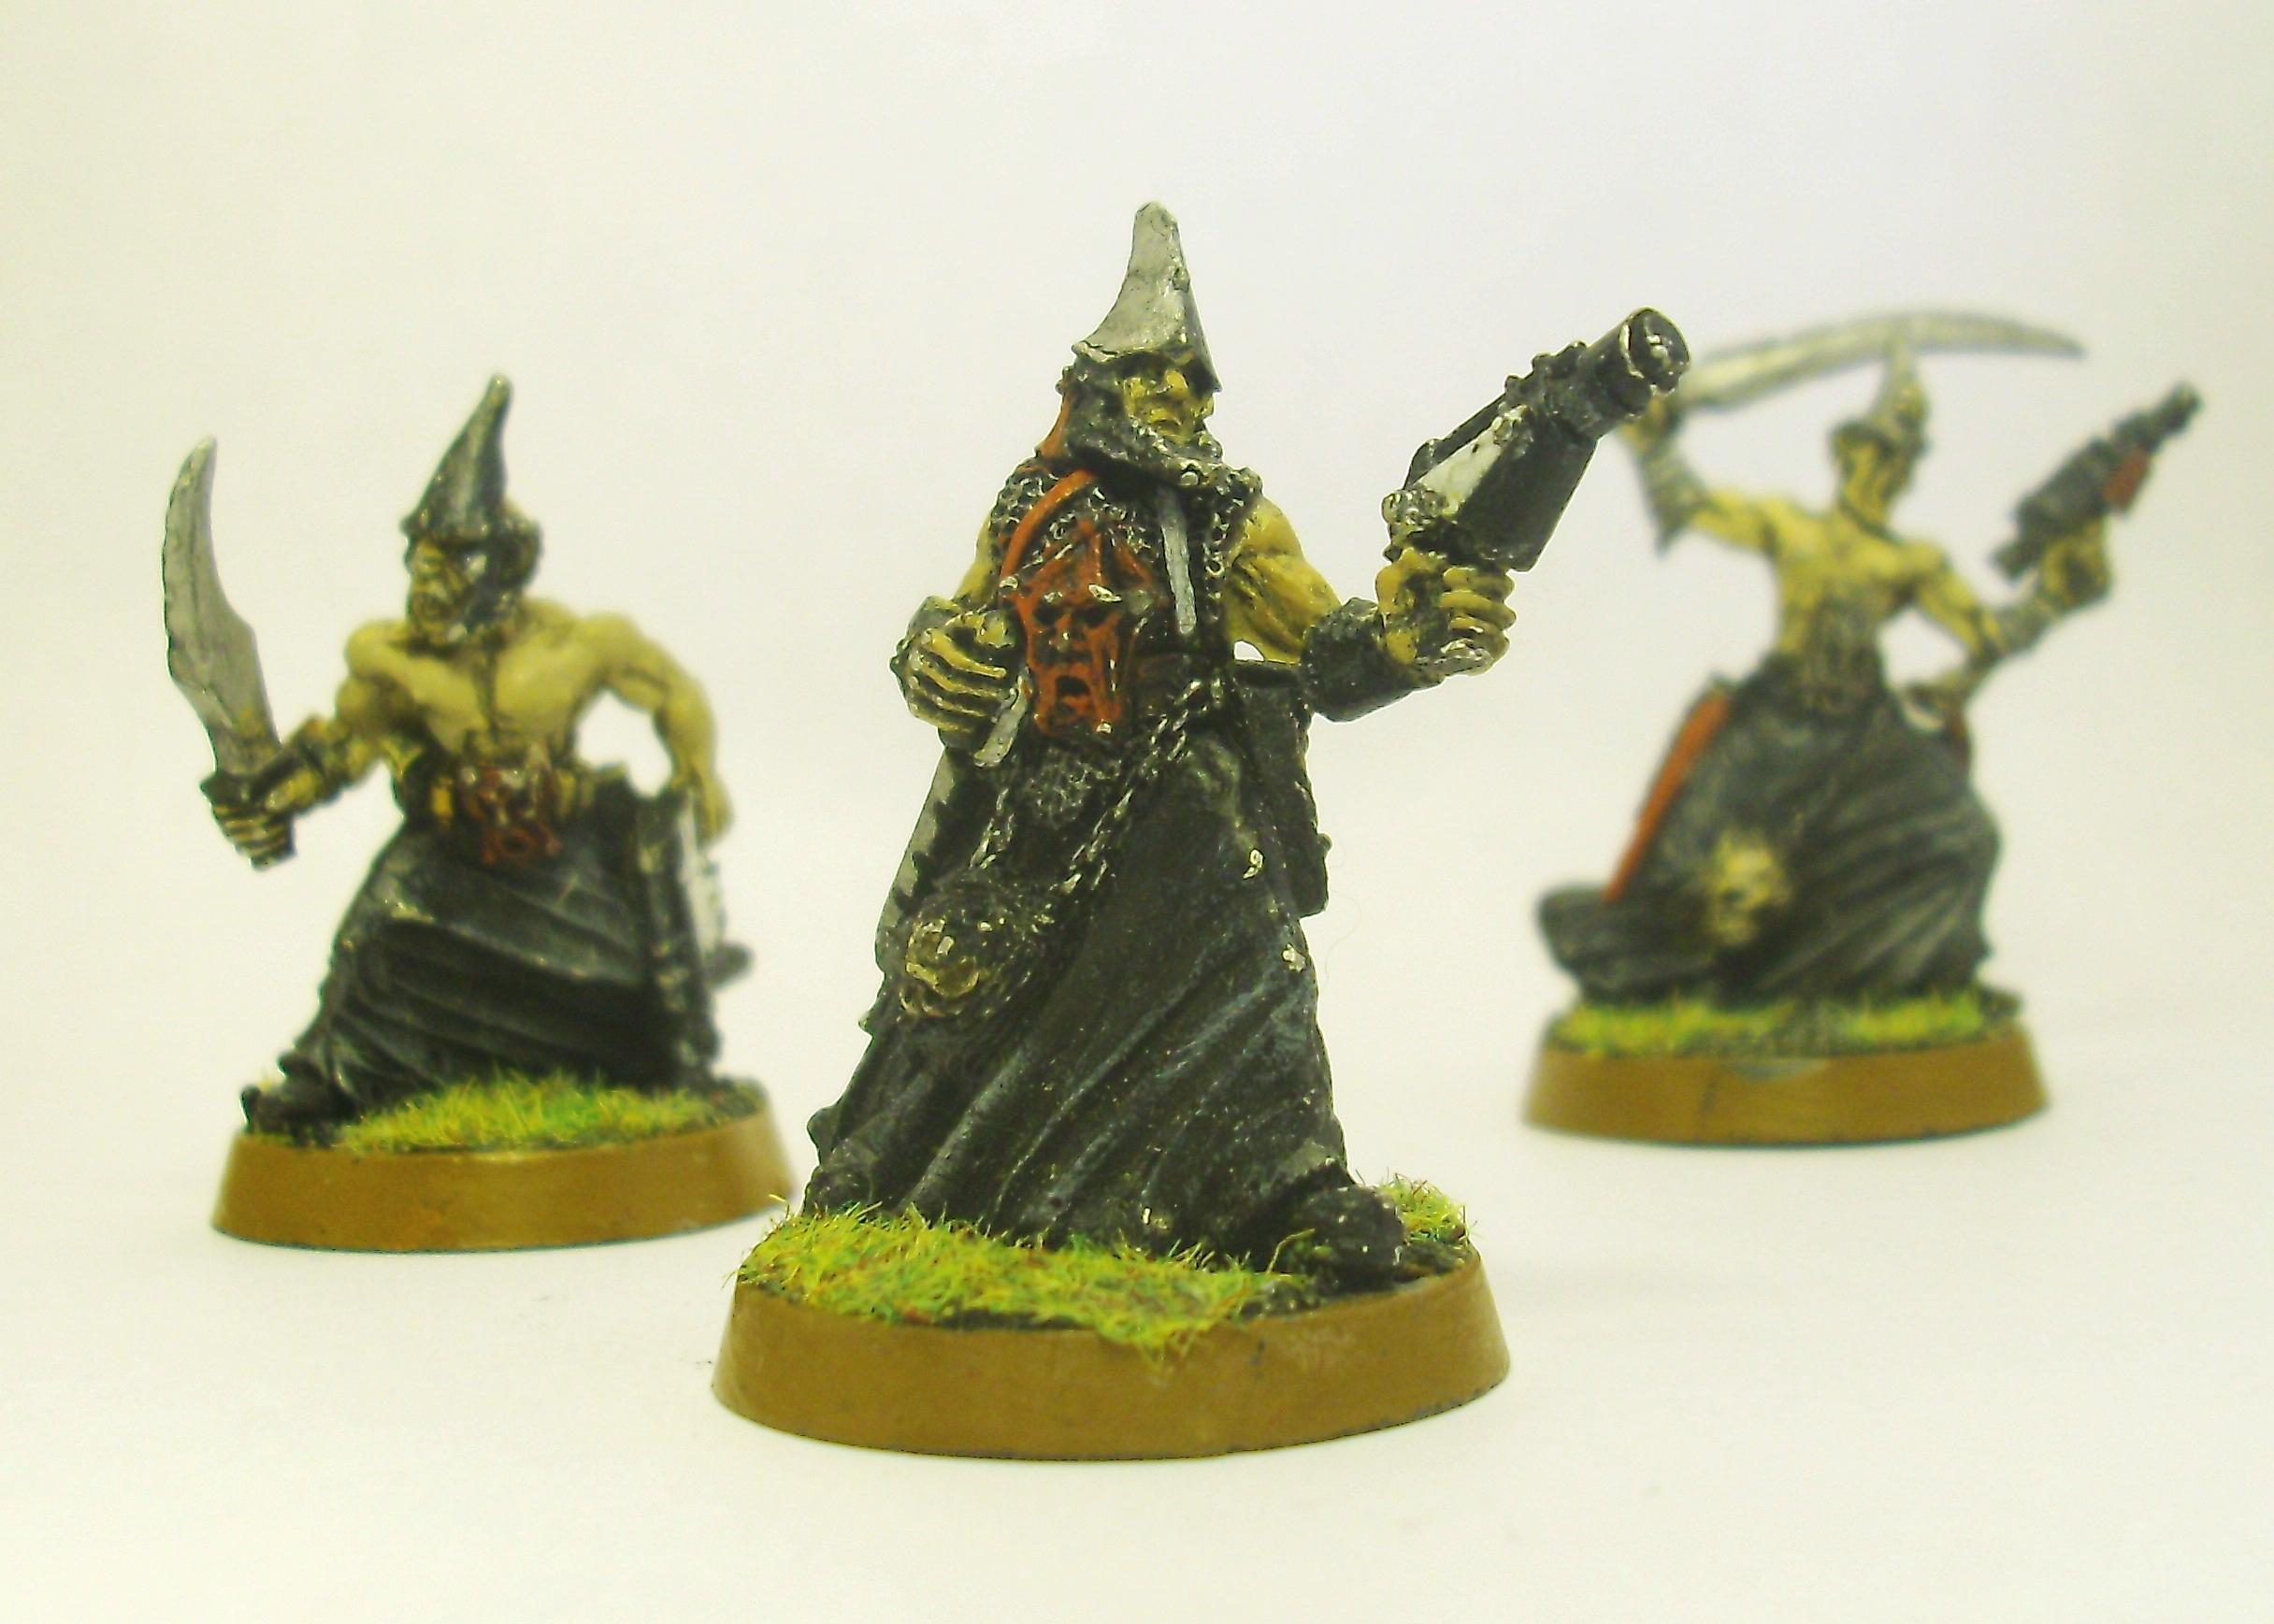 Cultists that will be making an appearance in our RPG games